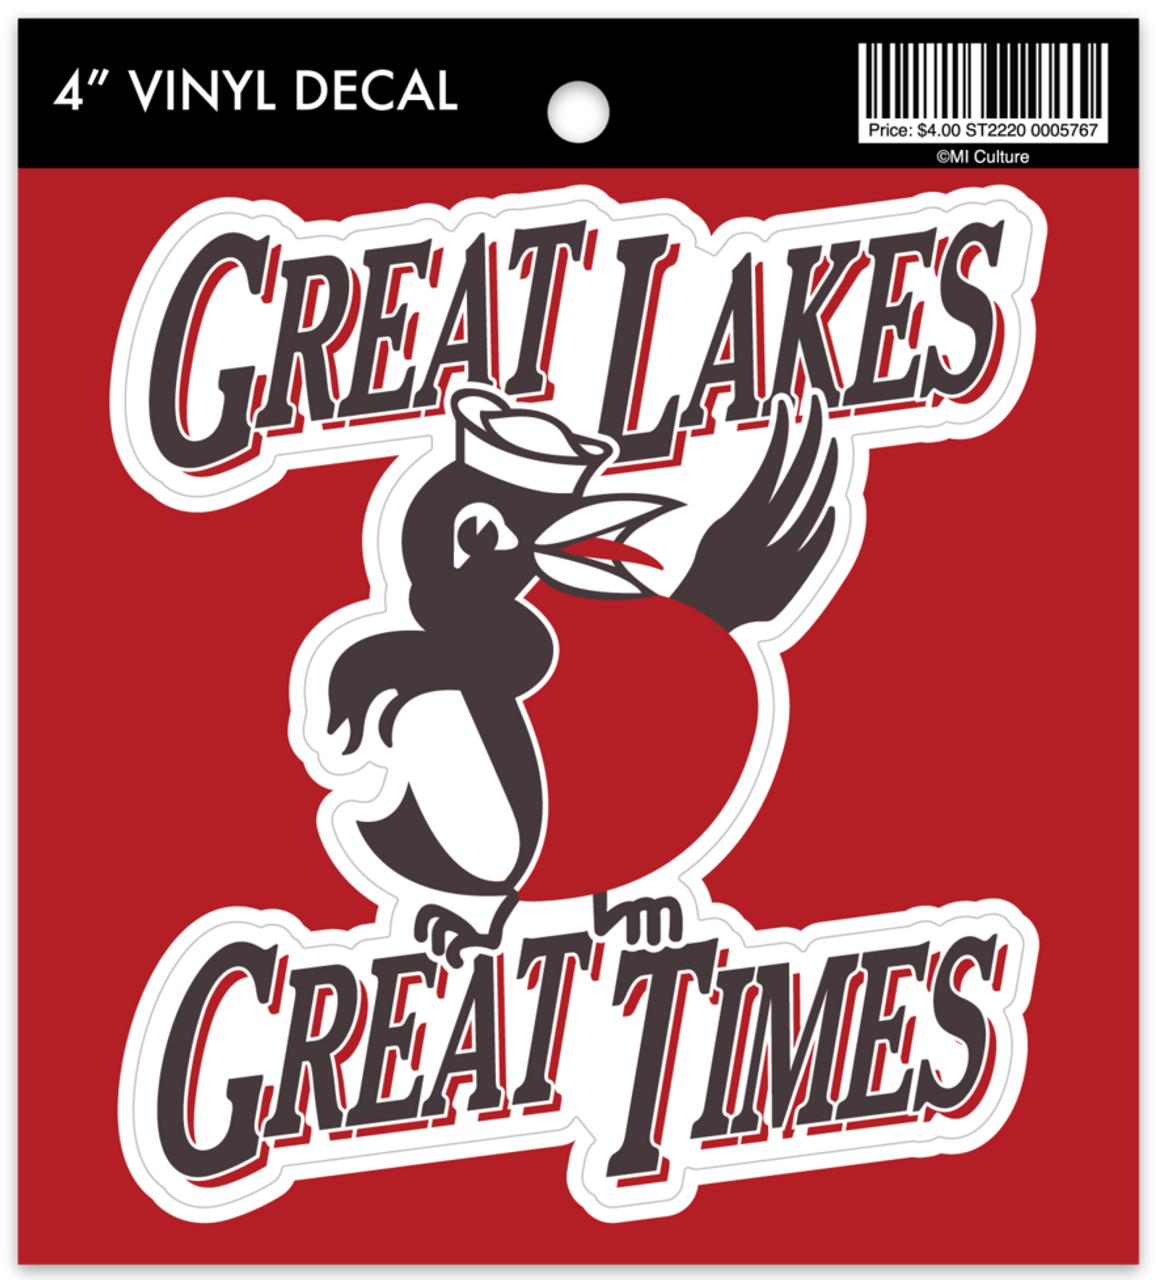 MI Culture Great Lakes Great Times Robin Vinyl Decal